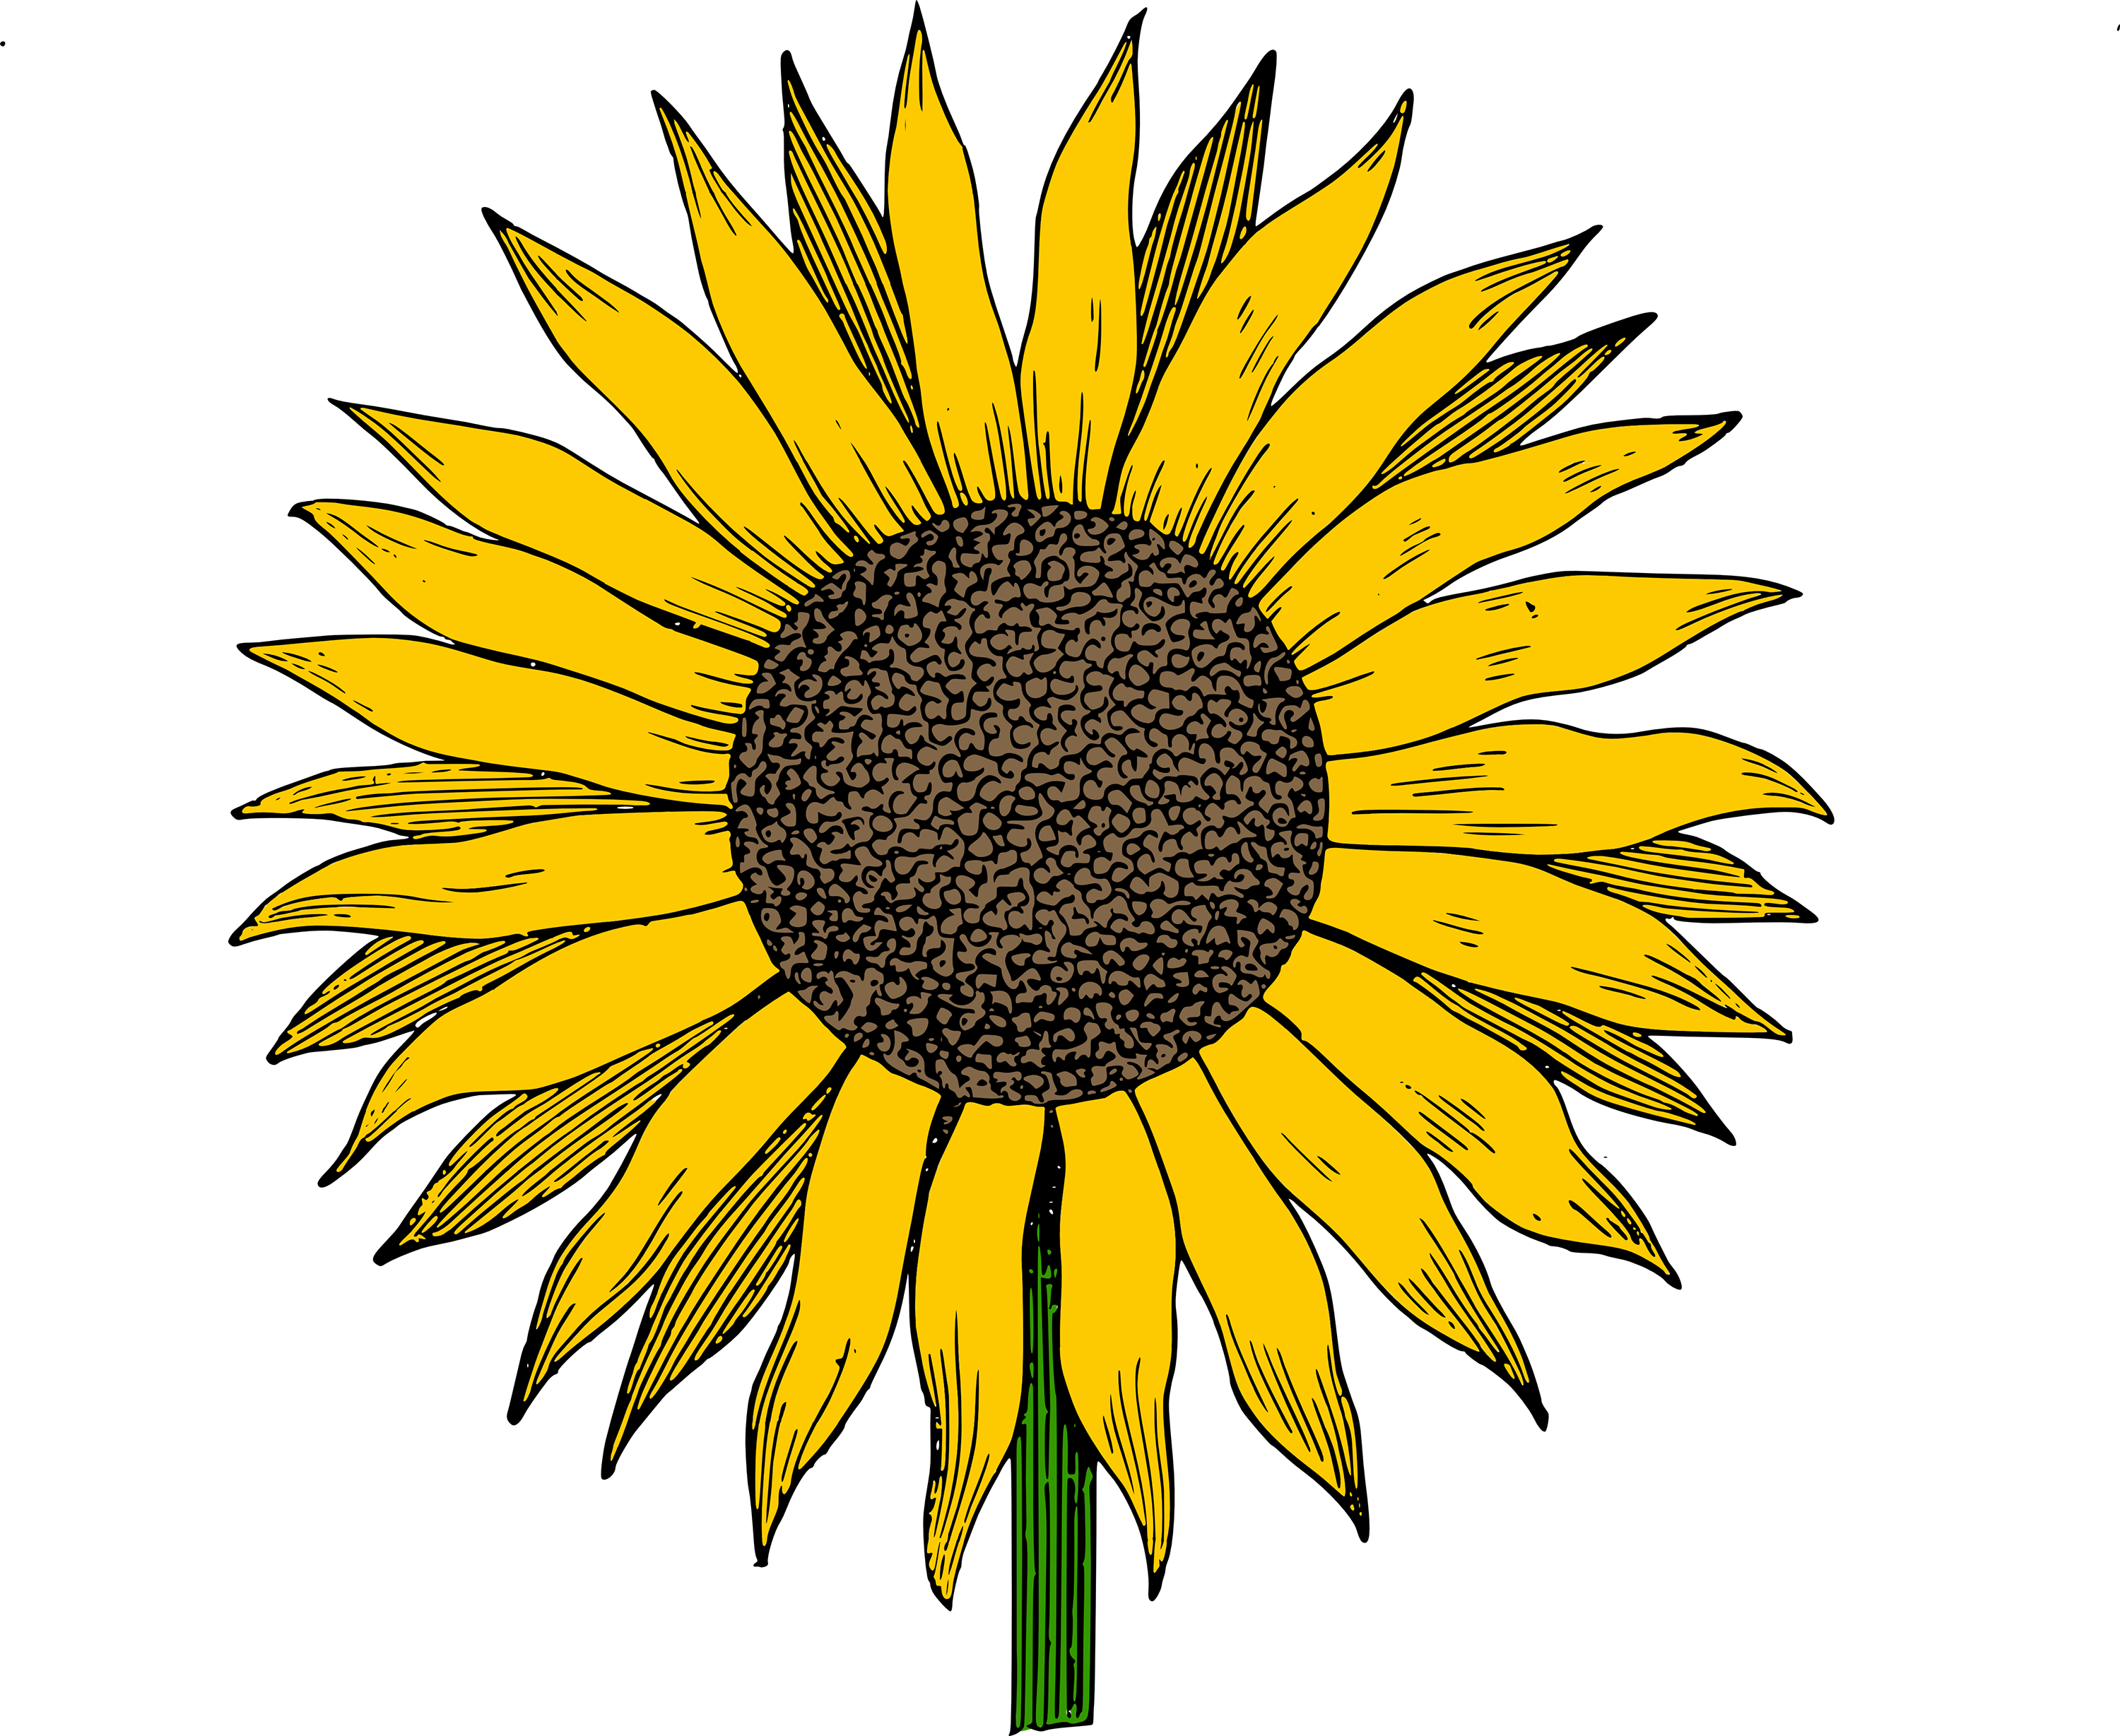 Sunflower vector png. Free clip art image